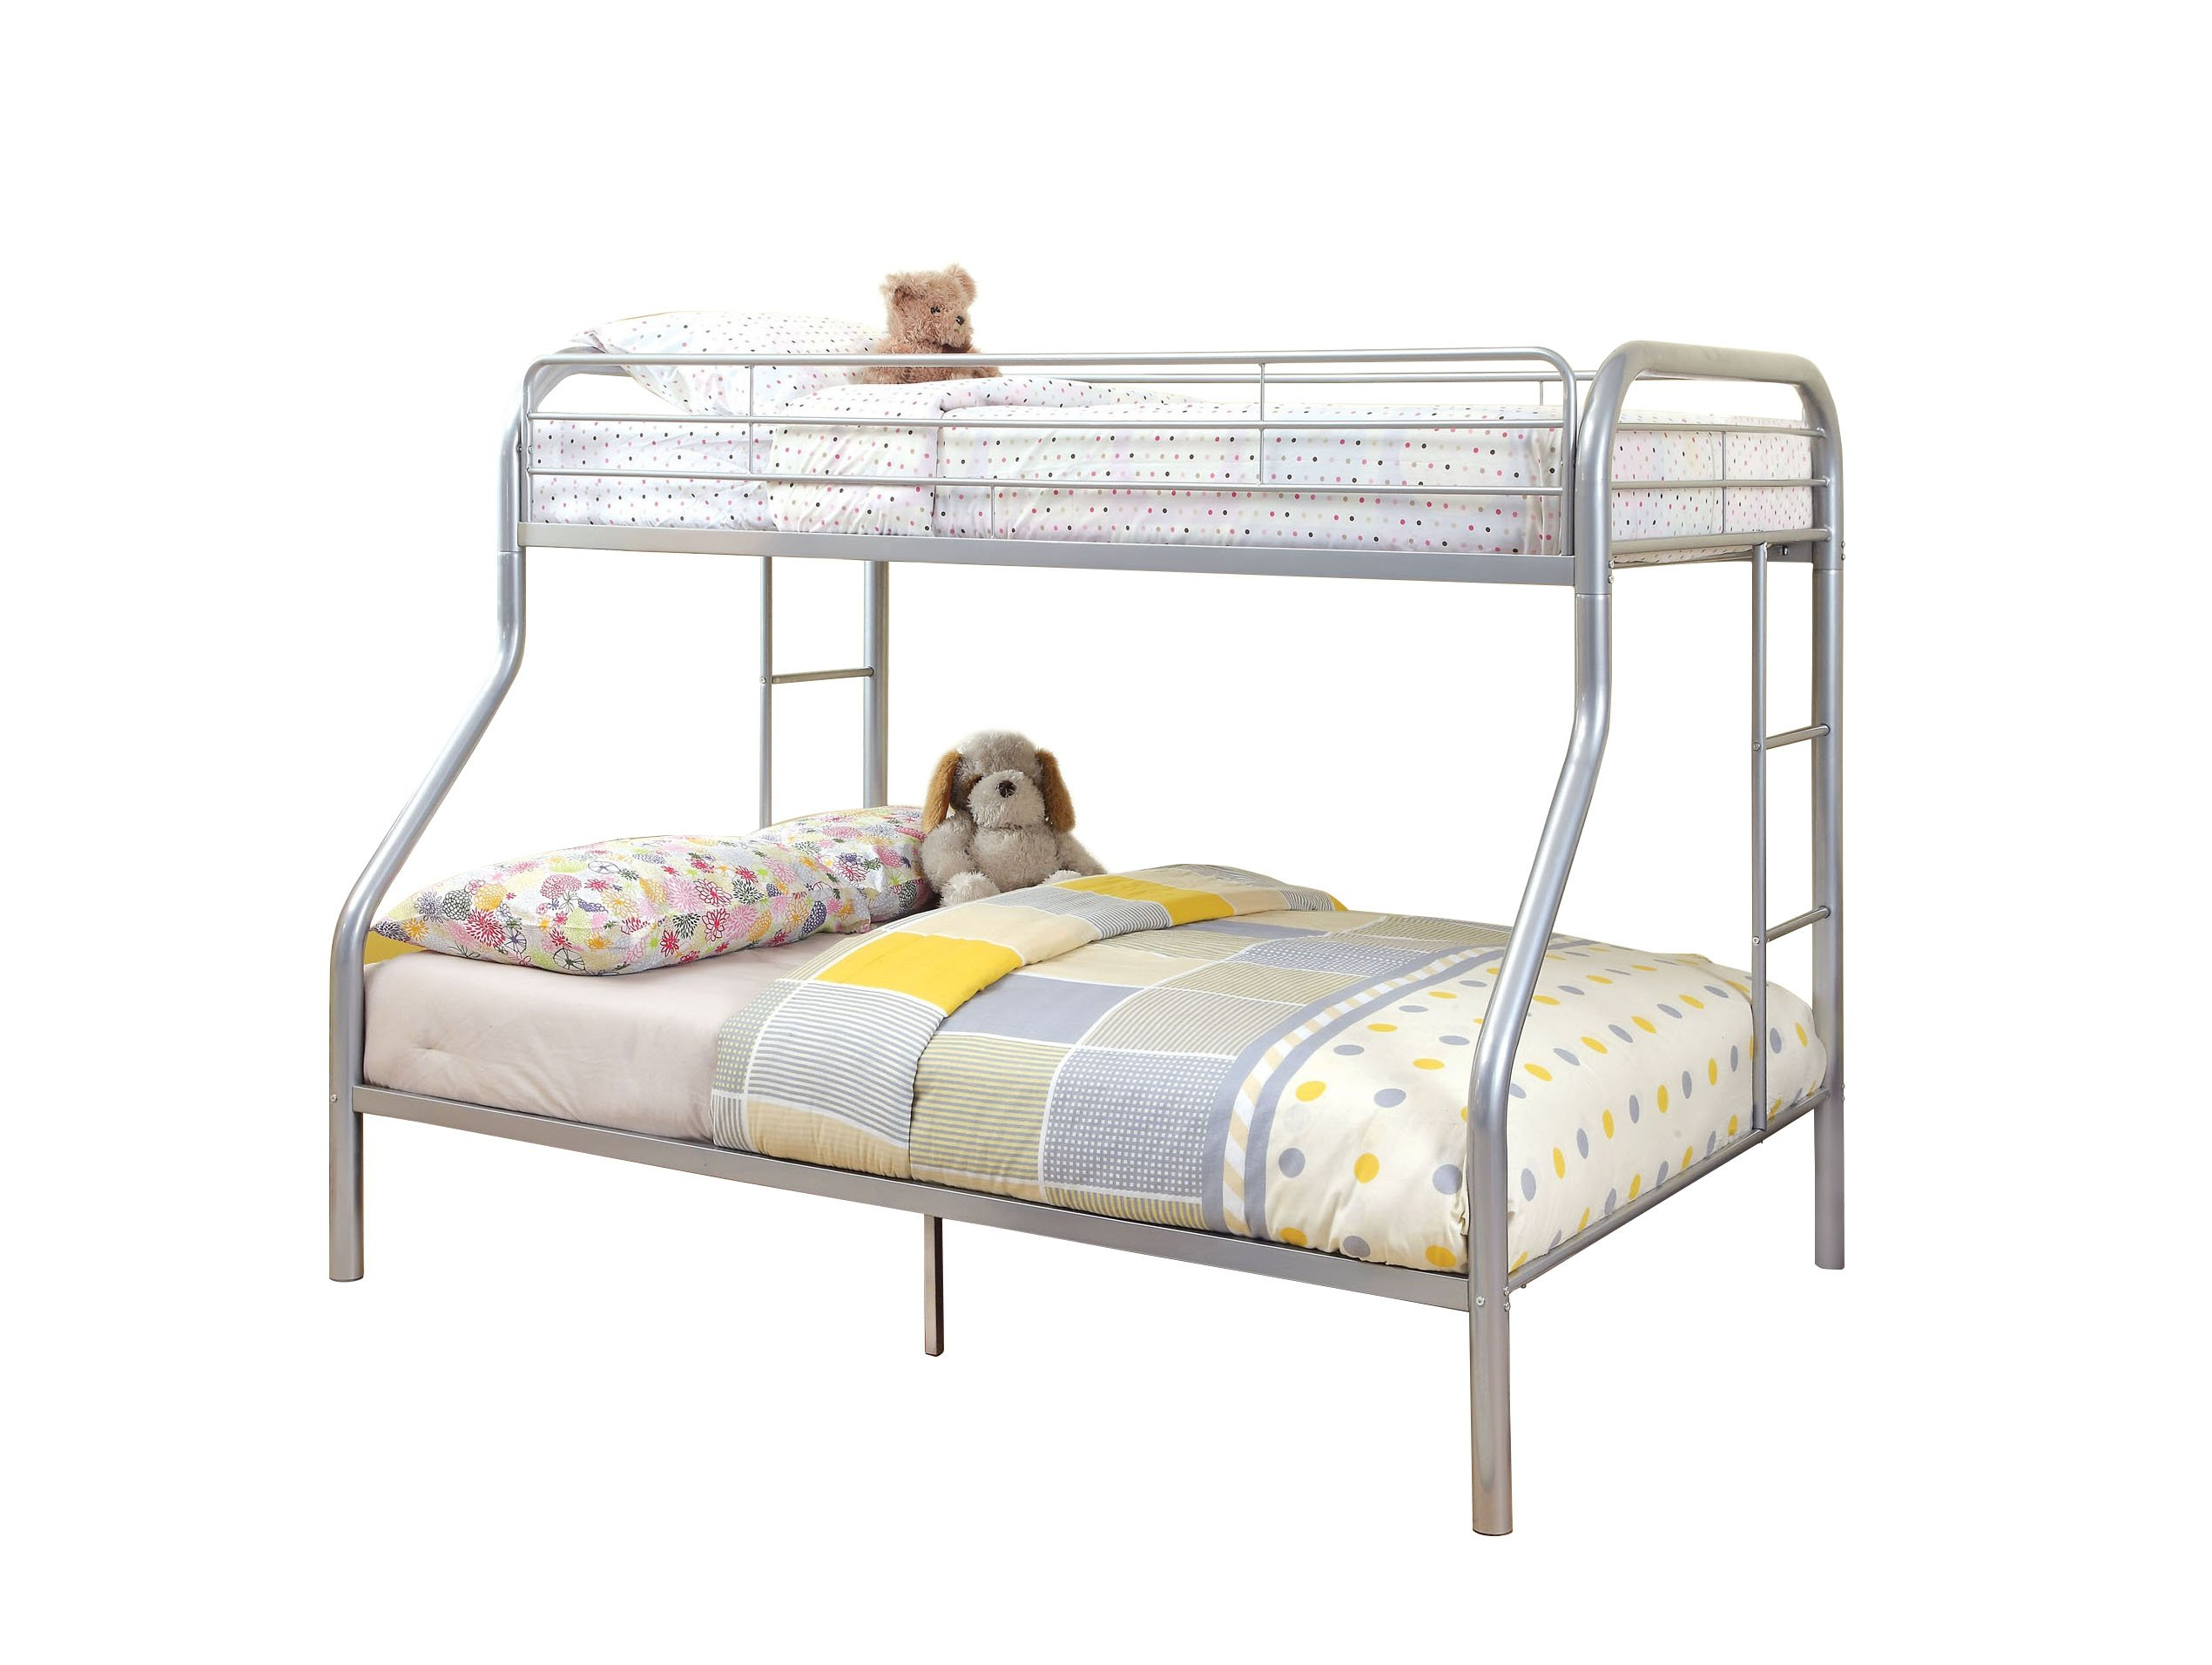 Furniture of America Non-Recycled Metal Bunk Bed, Twin Over Full, Silver